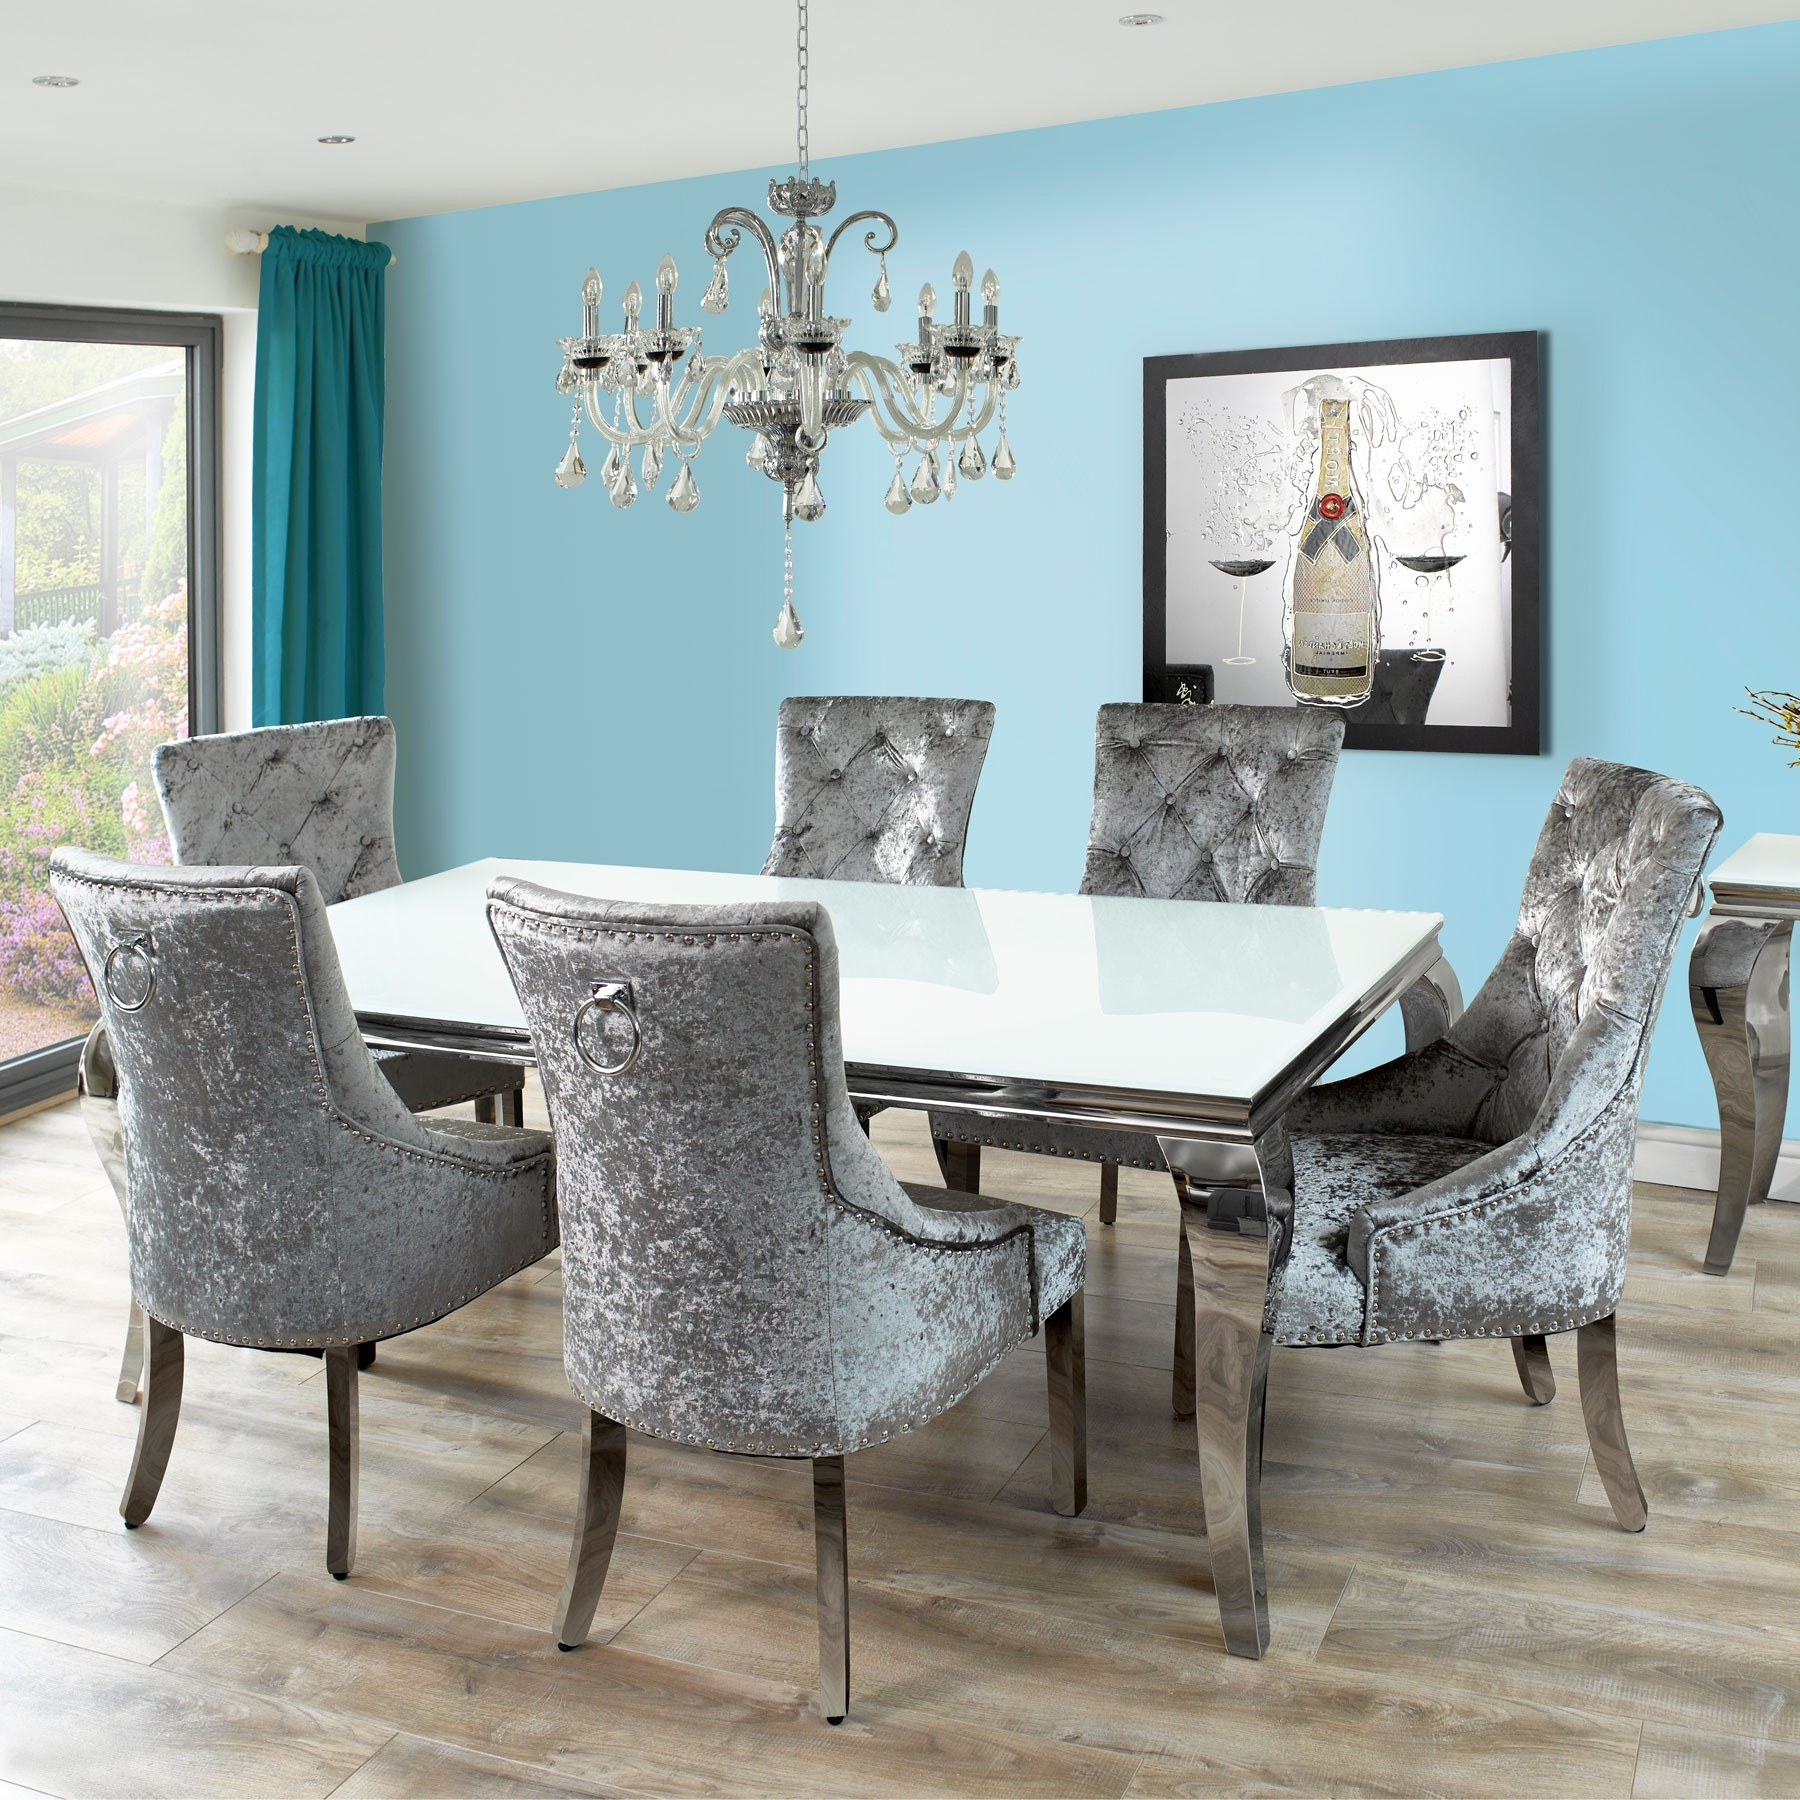 Well Known Fadenza White Glass Dining Table & 6 Silver Chairs With Knocker And Throughout Glass Dining Tables (View 24 of 25)